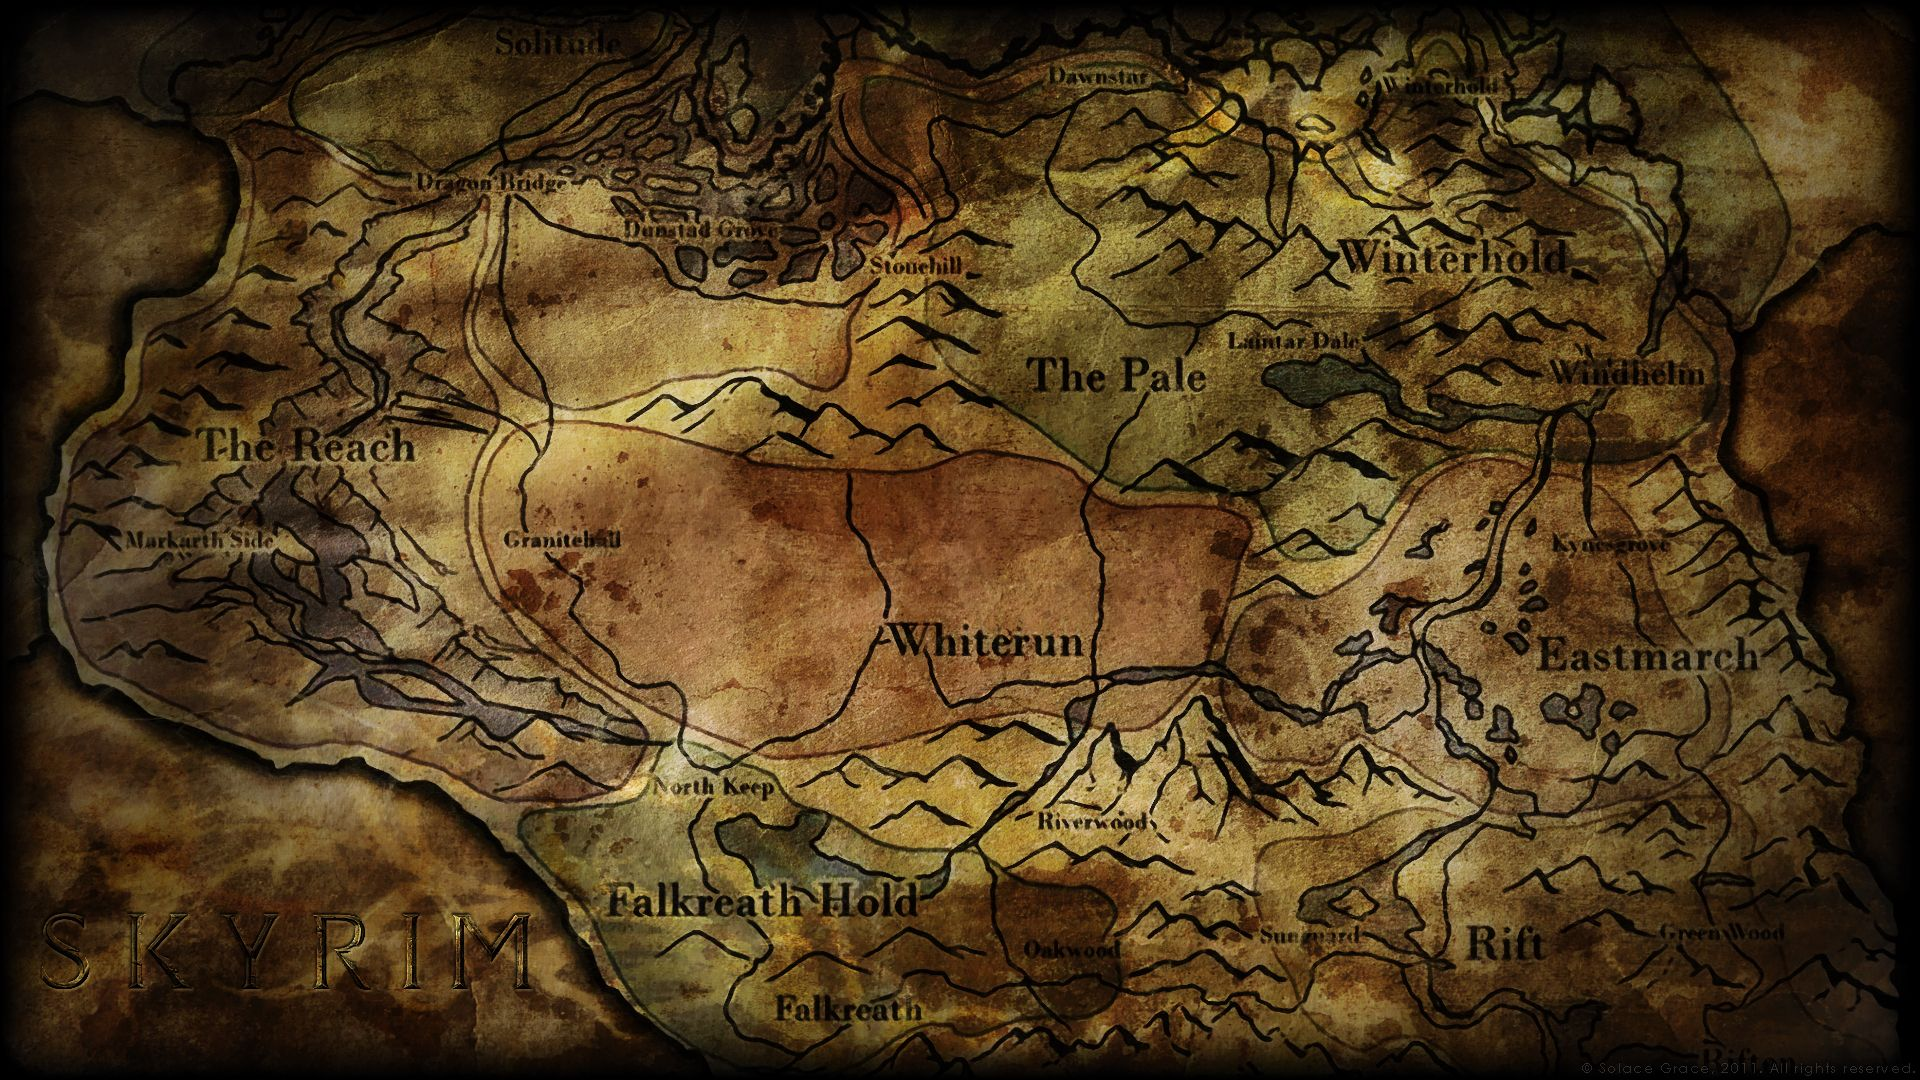 Skyrim Map Over 25 Different Maps Of Skyrim To Map Out Your Journey